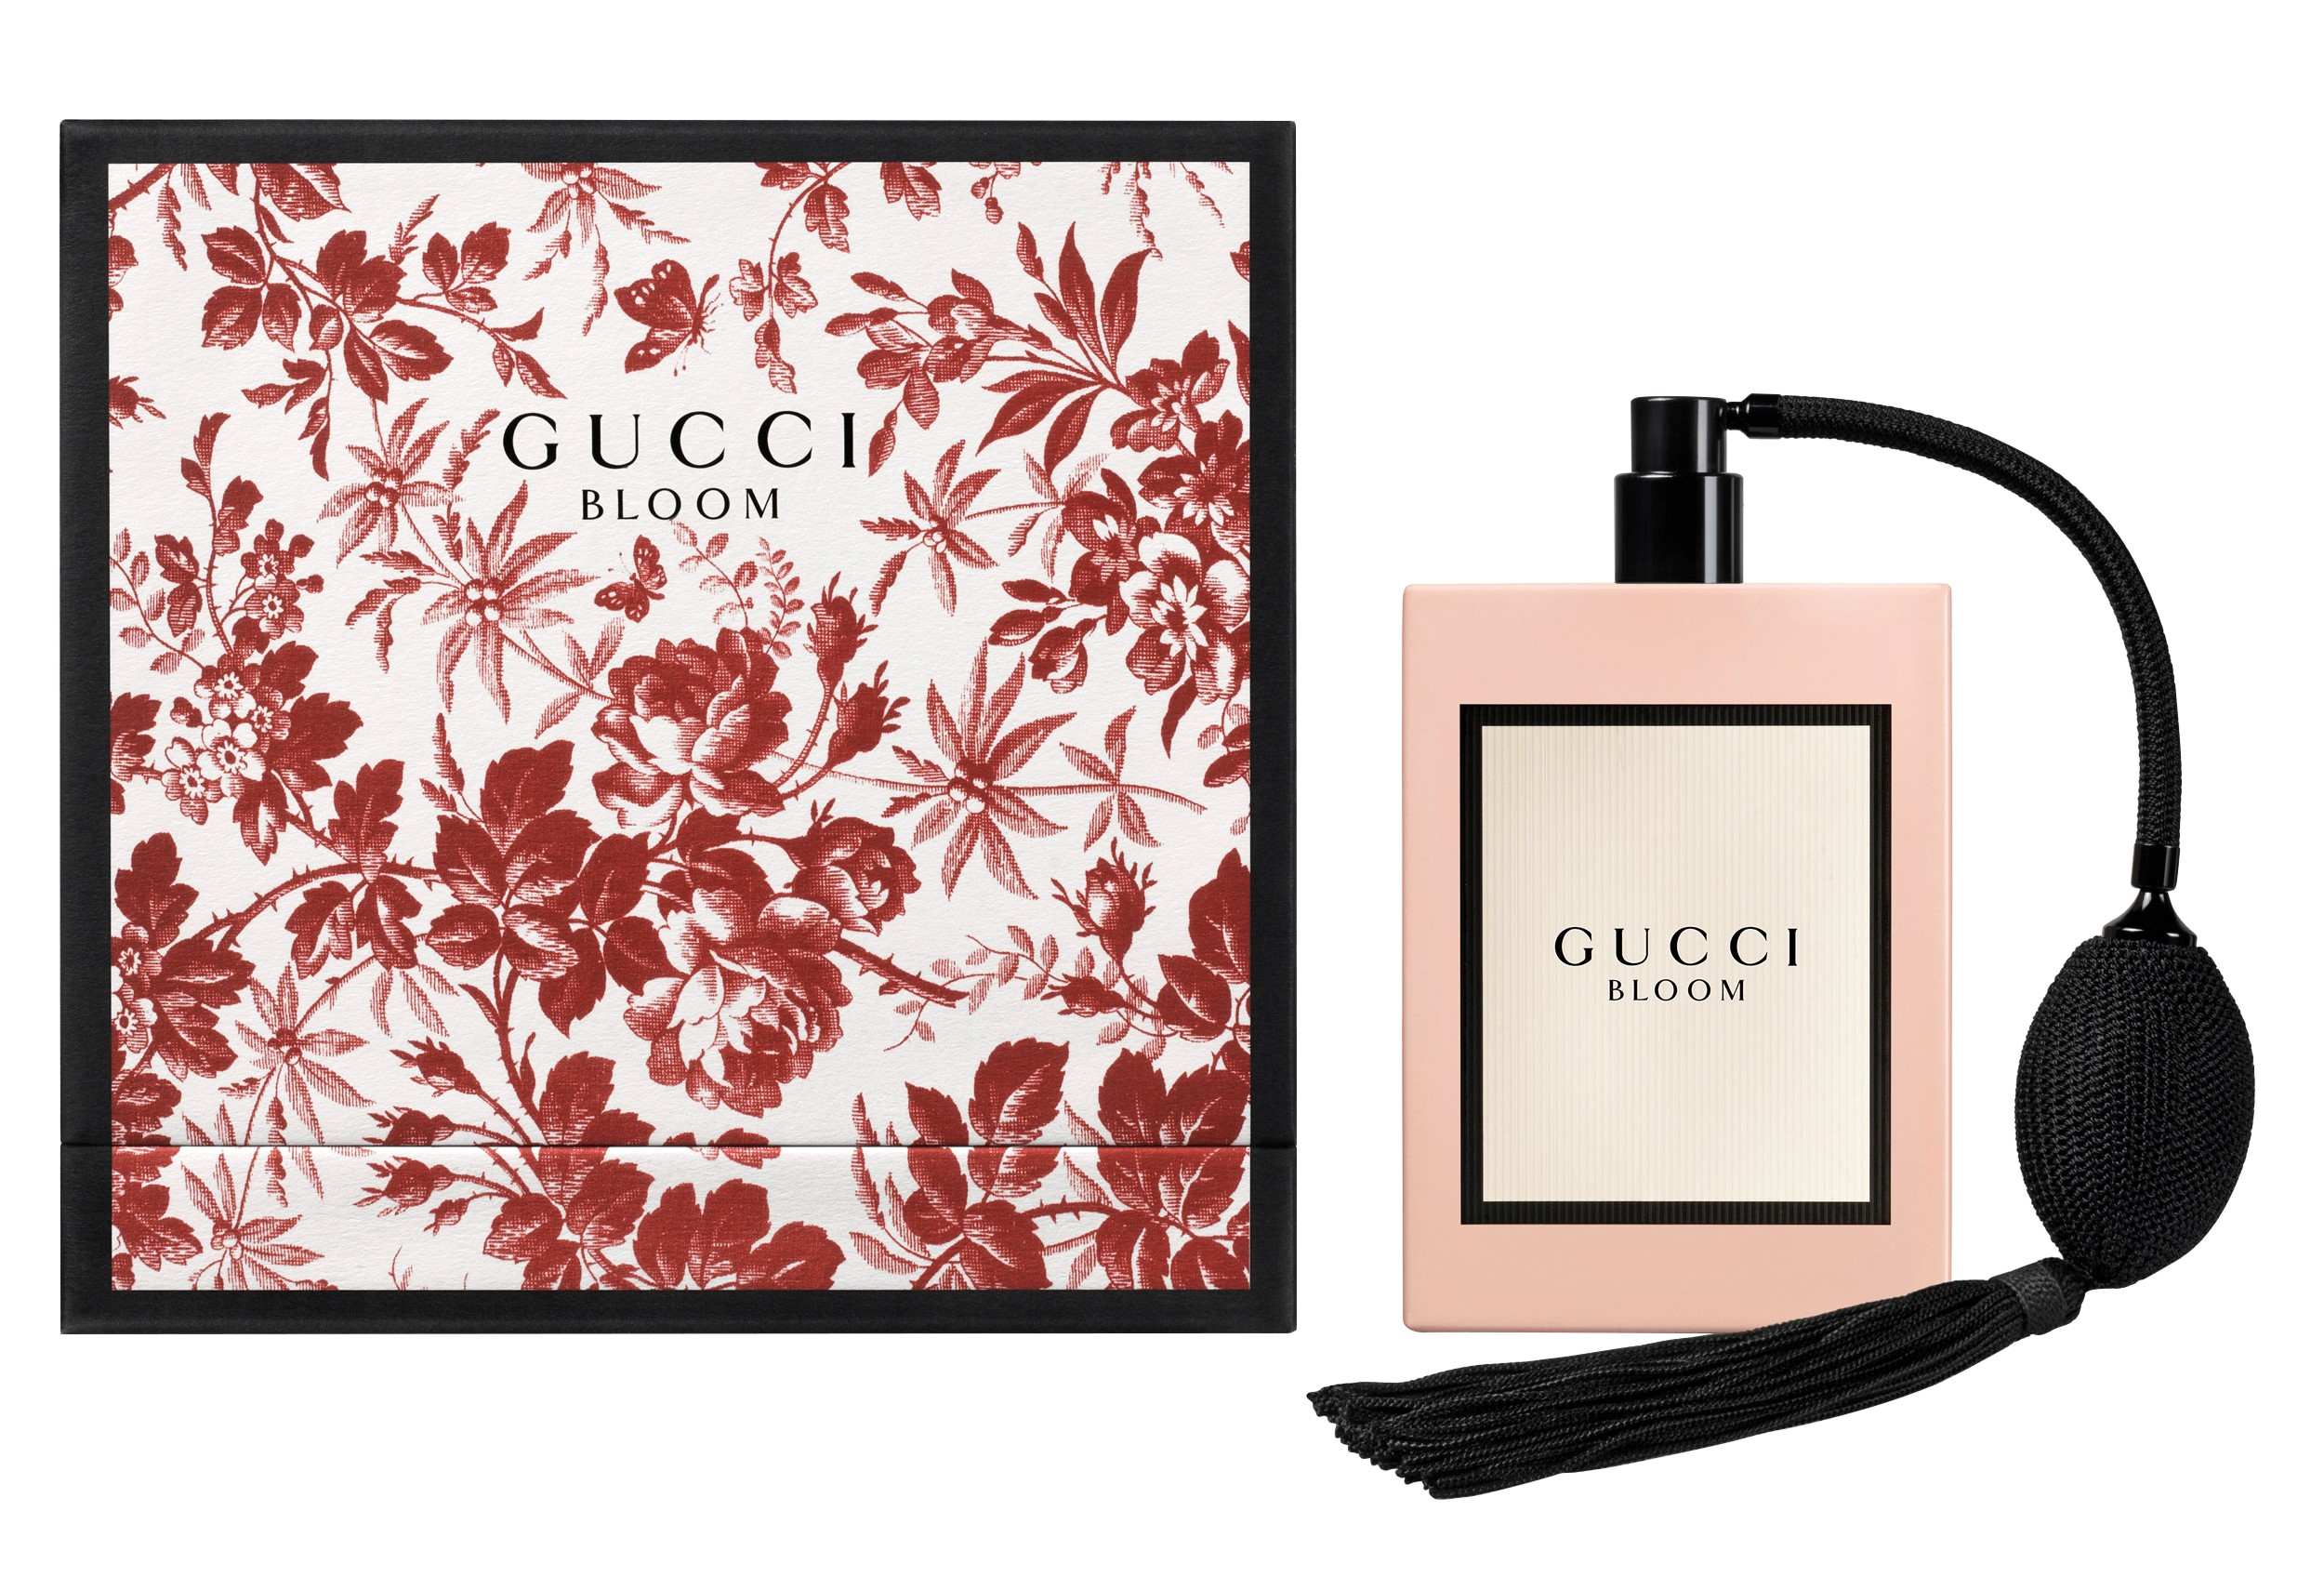 Gucci Bloom Deluxe Edition